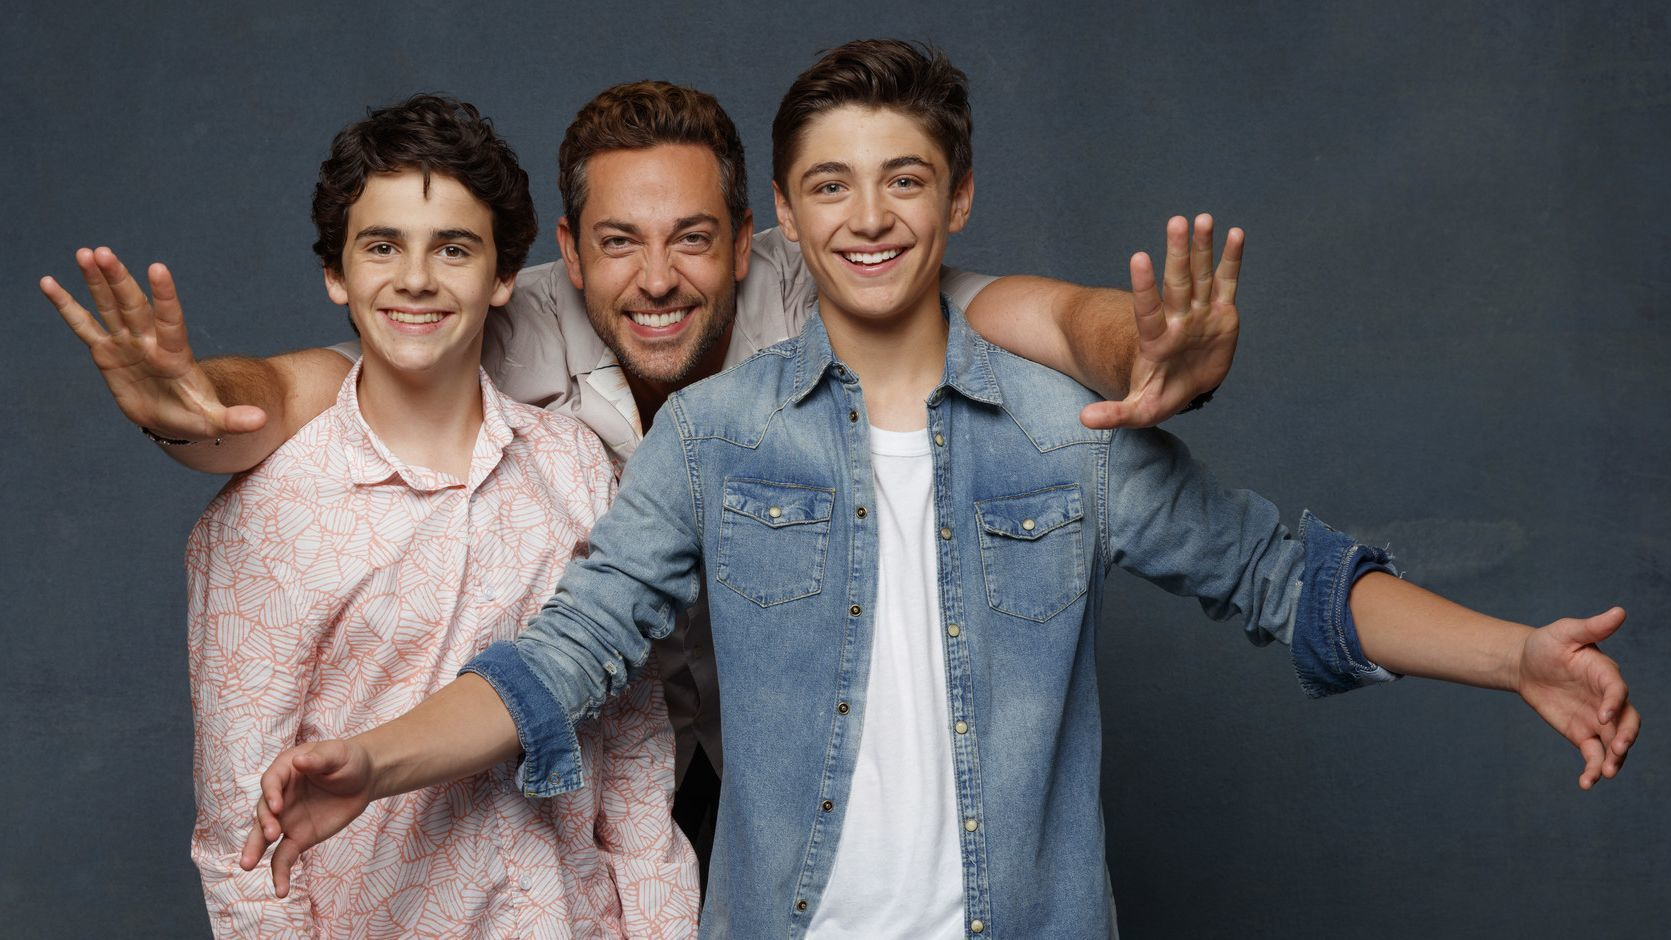 SAN DIEGO, CALIF. -- JULY 21, 2018-- (L-R)- Jack Dylan Grazer, Zachary Levi and Asher Angel from the